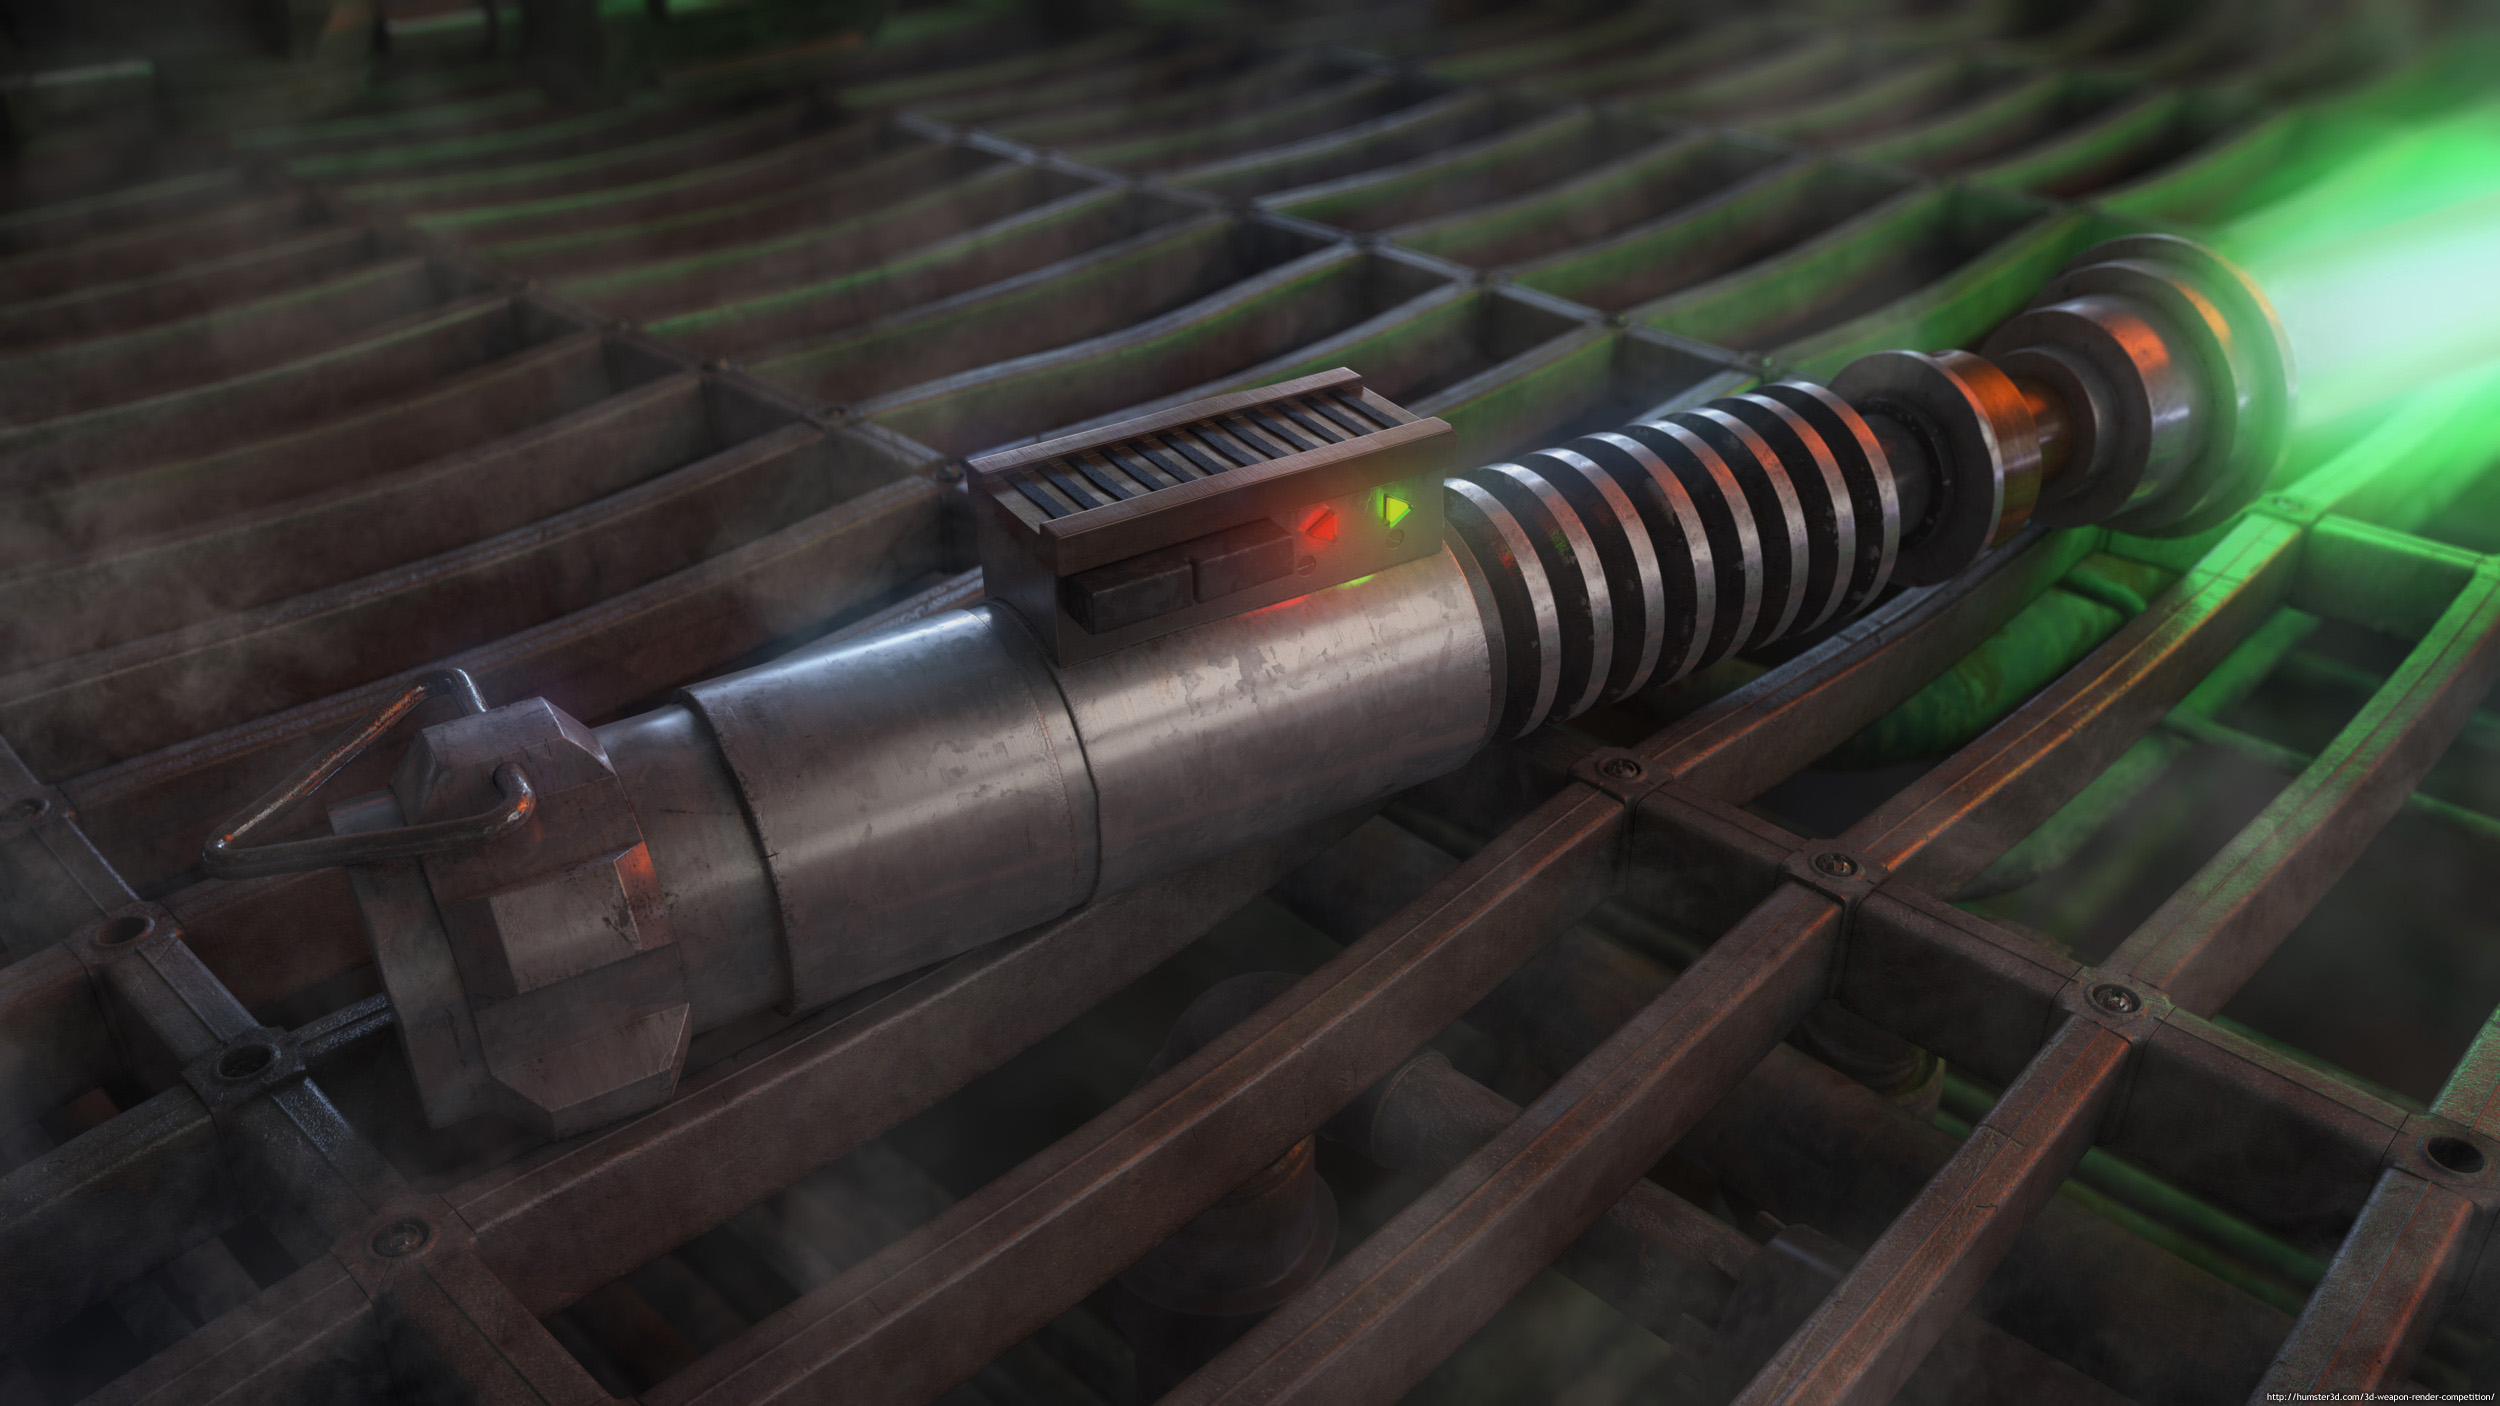 The ROTJ Luke Skywalker Lightsaber 3d art